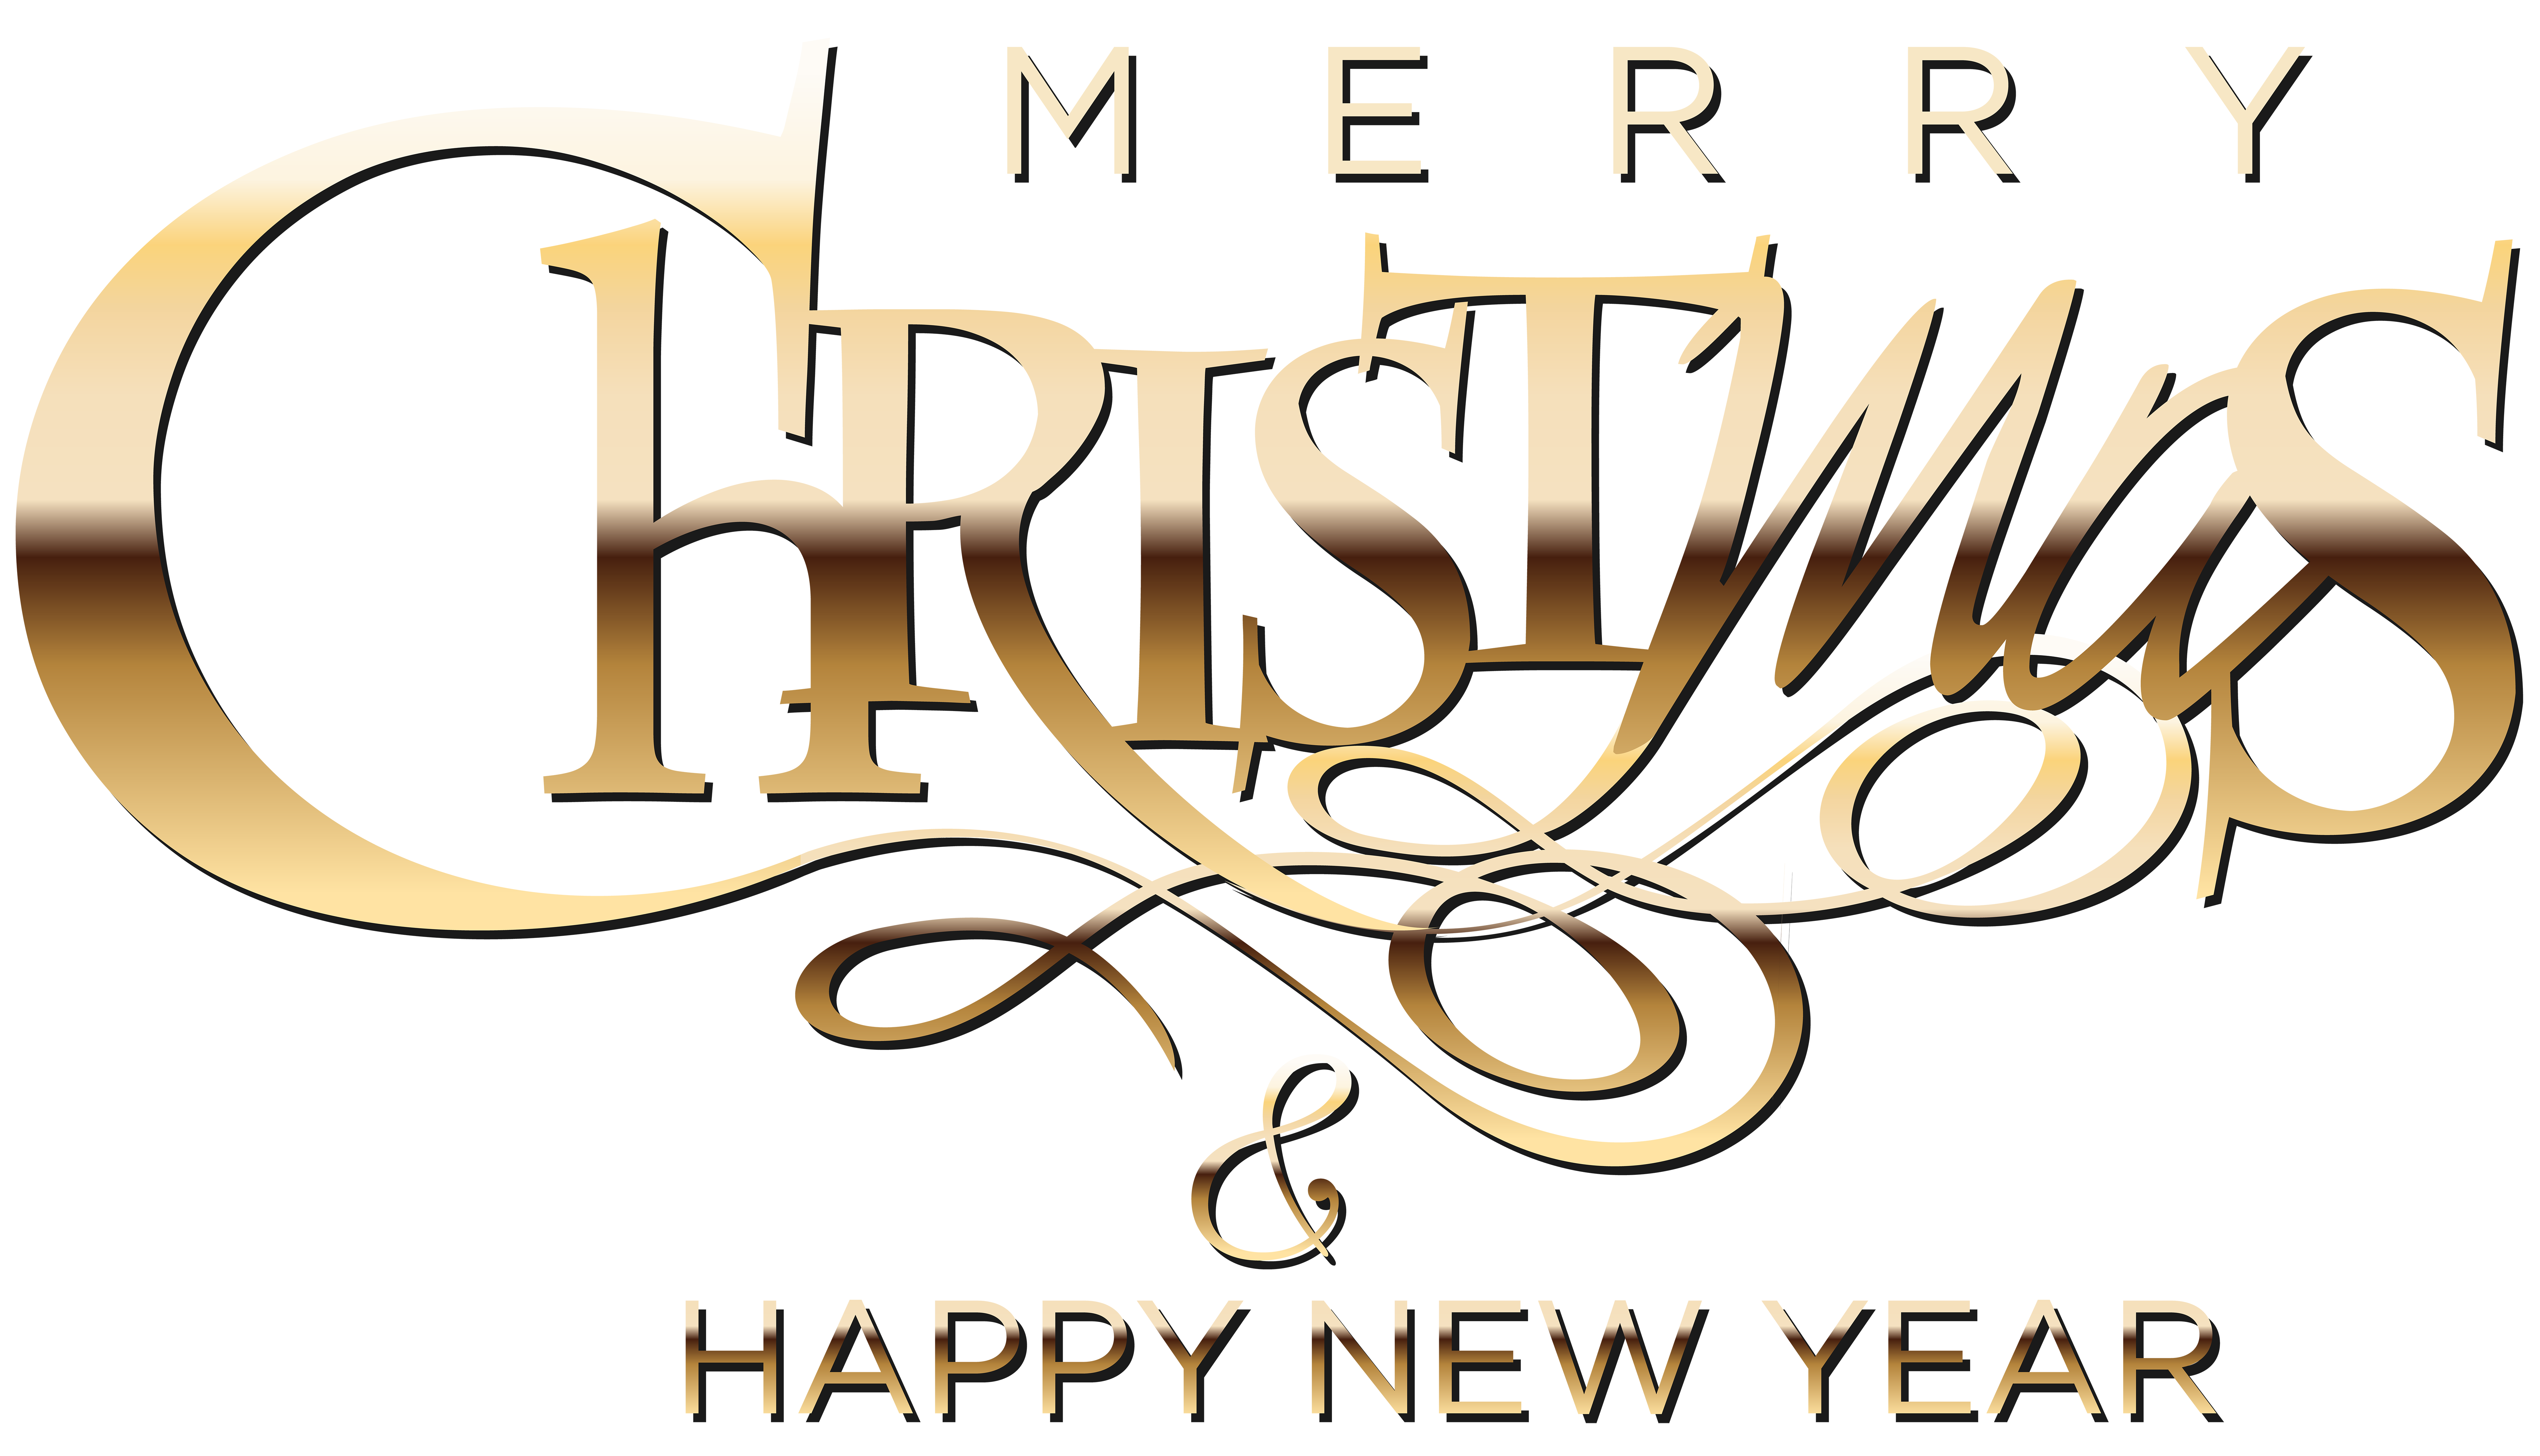 Merry Christmas and Happy New Year Clip Art Image.